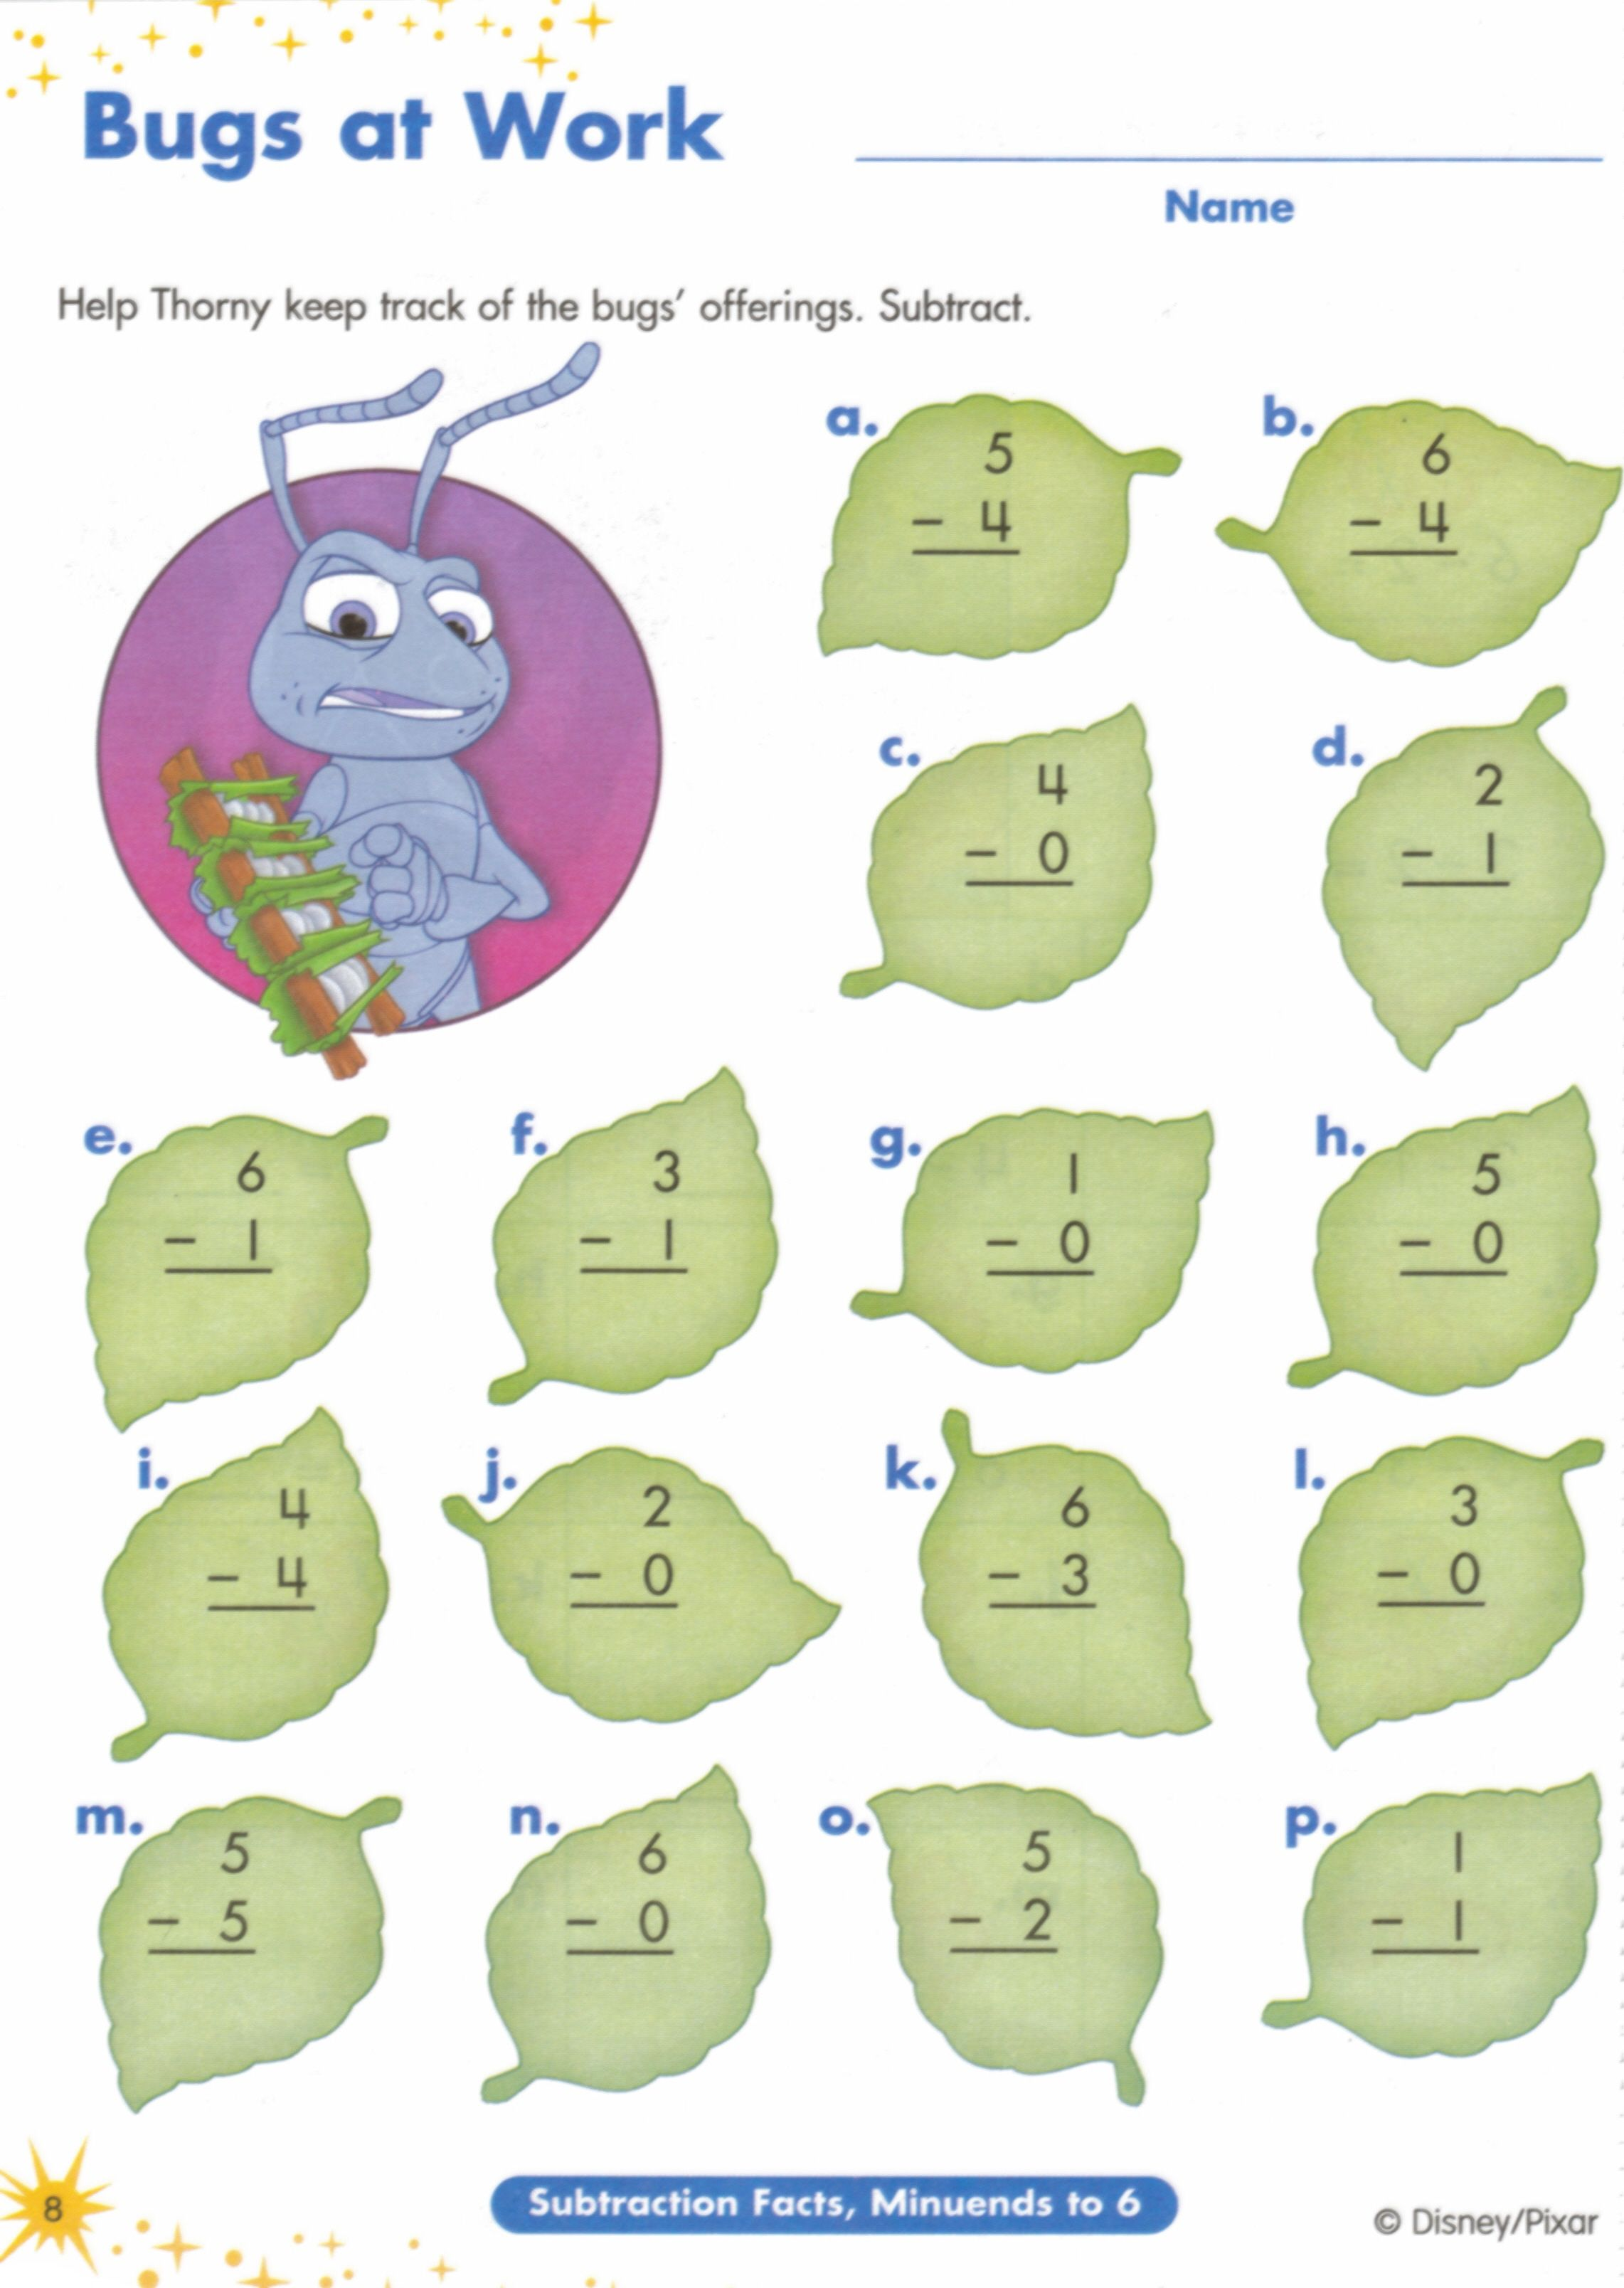 Proatmealus  Nice  Images About Worksheets On Pinterest  Fun Facts For Kids  With Luxury  Images About Worksheets On Pinterest  Fun Facts For Kids Earth Day Worksheets And Jungles With Lovely Singapore Maths Worksheets Also Phonics Worksheets Phase  In Addition Victorian Modern Cursive Worksheets And Ch Sh Worksheets As Well As Er Sound Worksheets Additionally Specific Heat Worksheets With Answers From Pinterestcom With Proatmealus  Luxury  Images About Worksheets On Pinterest  Fun Facts For Kids  With Lovely  Images About Worksheets On Pinterest  Fun Facts For Kids Earth Day Worksheets And Jungles And Nice Singapore Maths Worksheets Also Phonics Worksheets Phase  In Addition Victorian Modern Cursive Worksheets From Pinterestcom